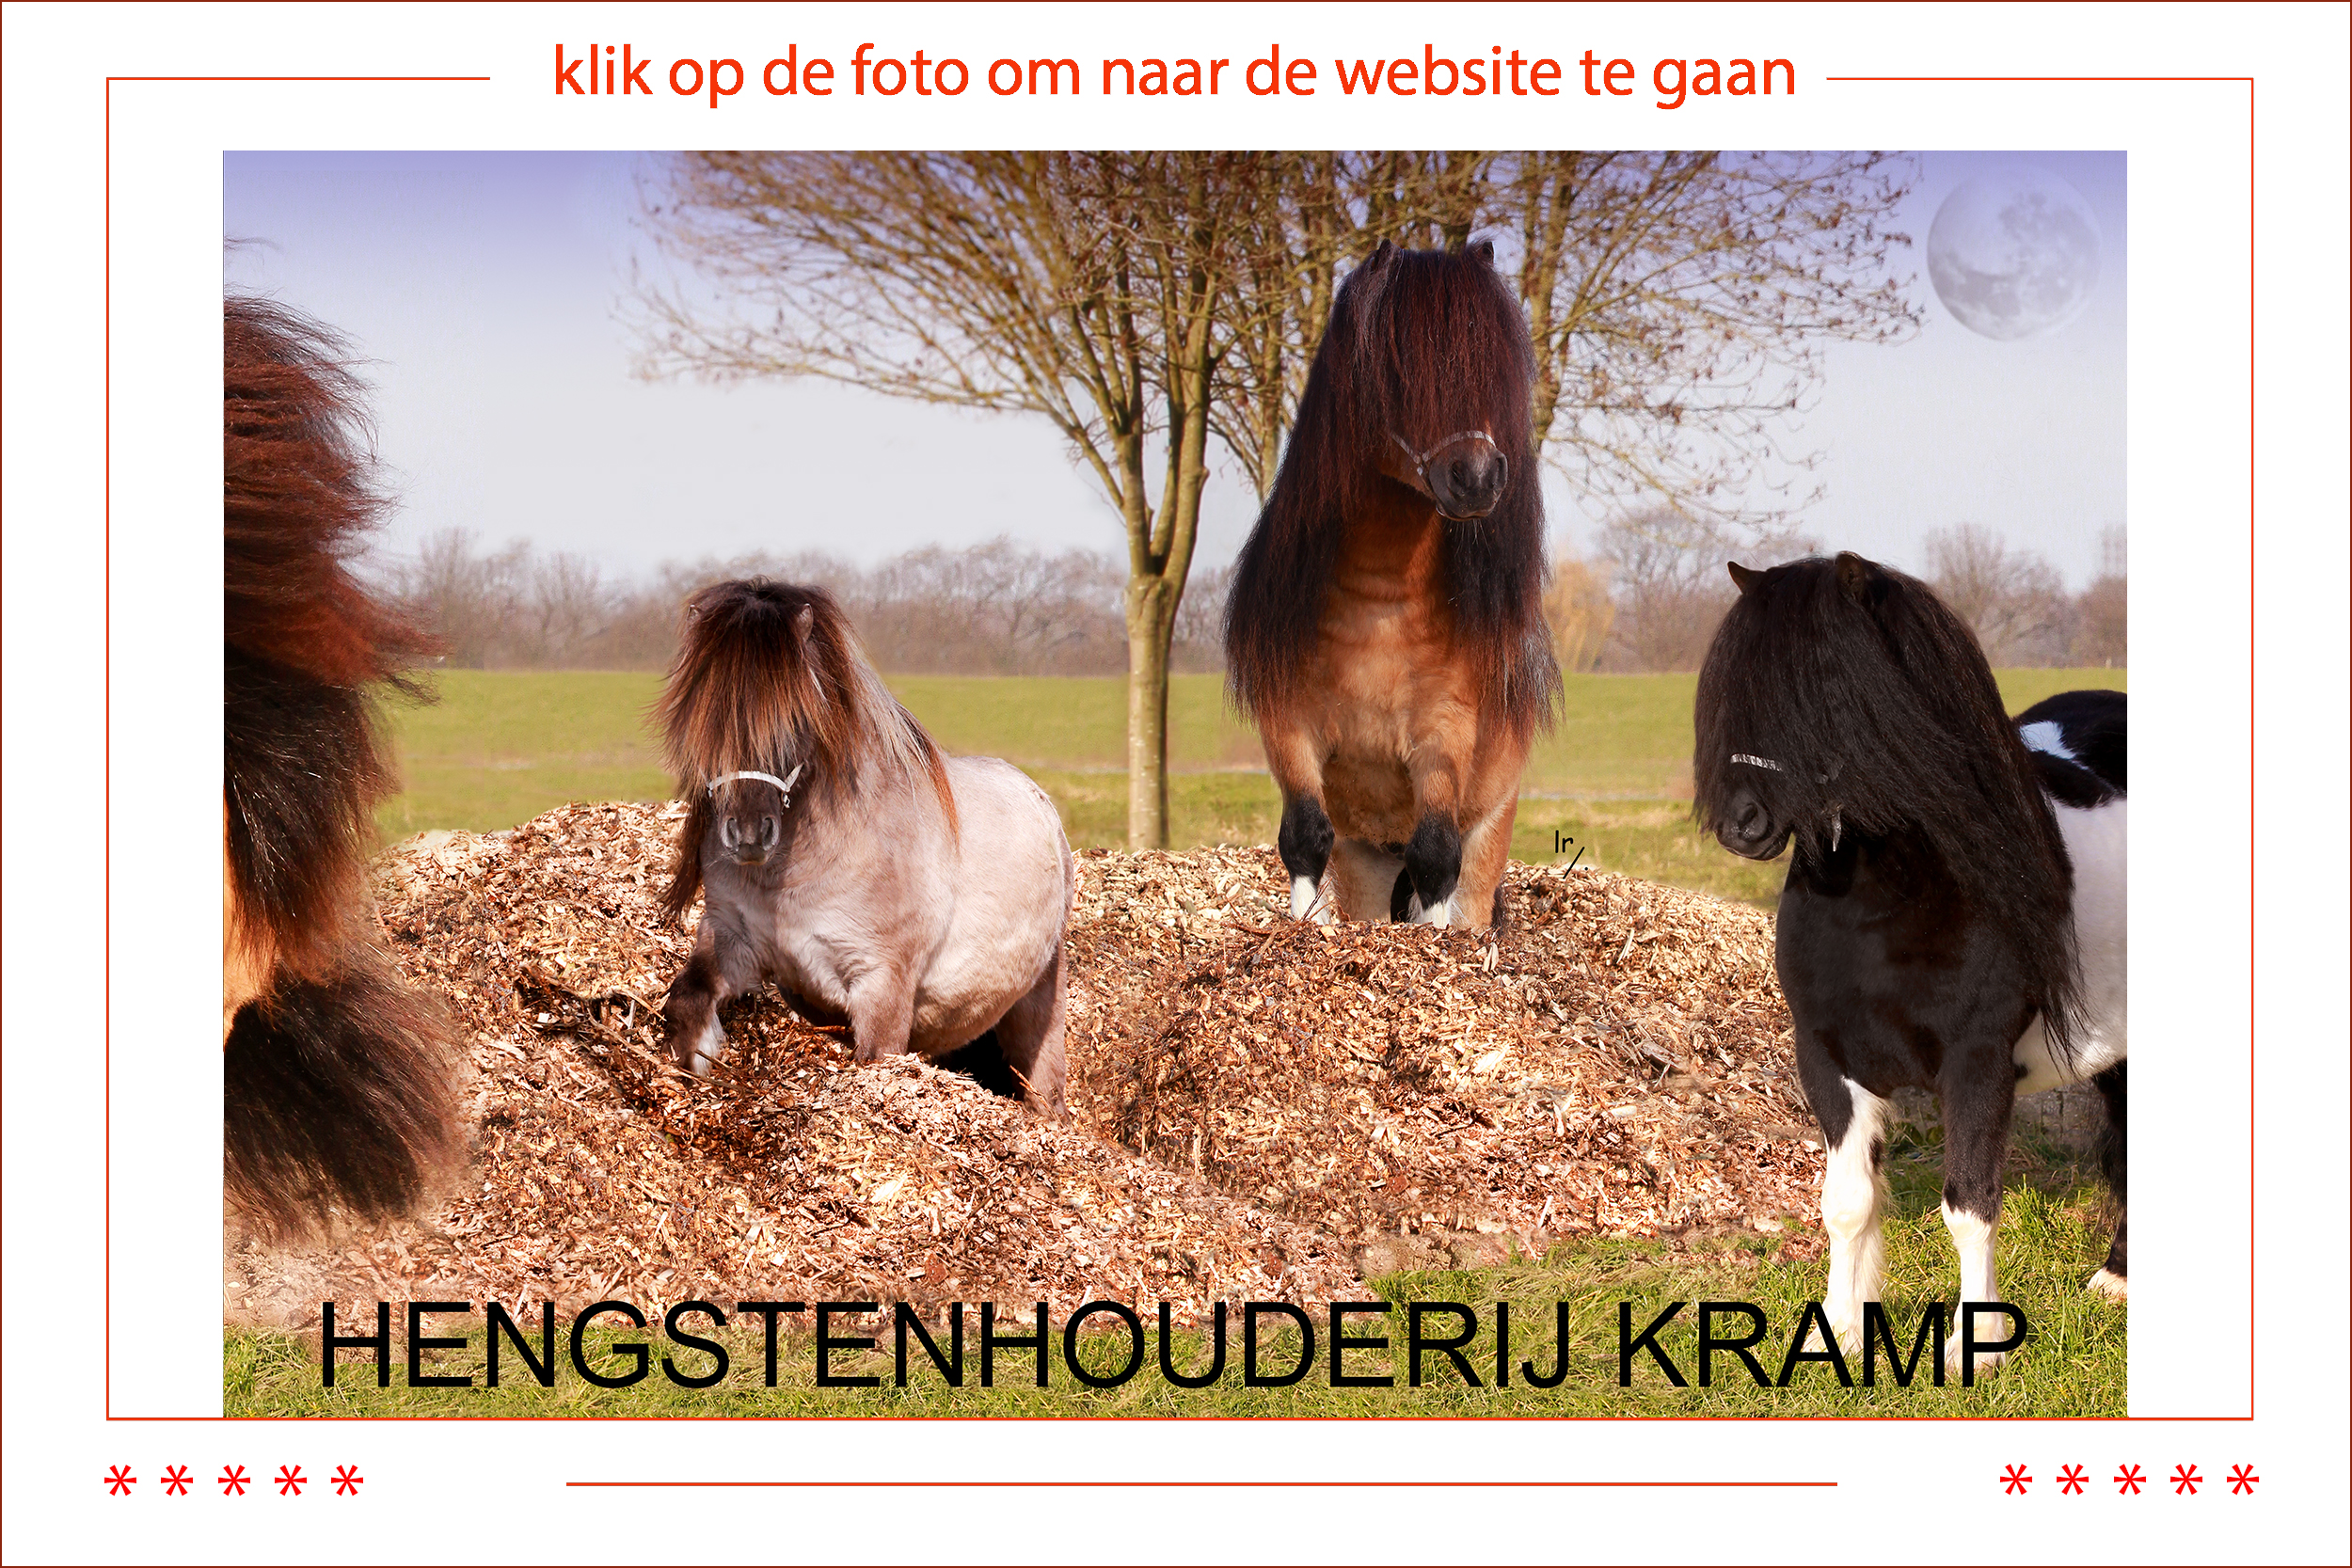 Advertentie: